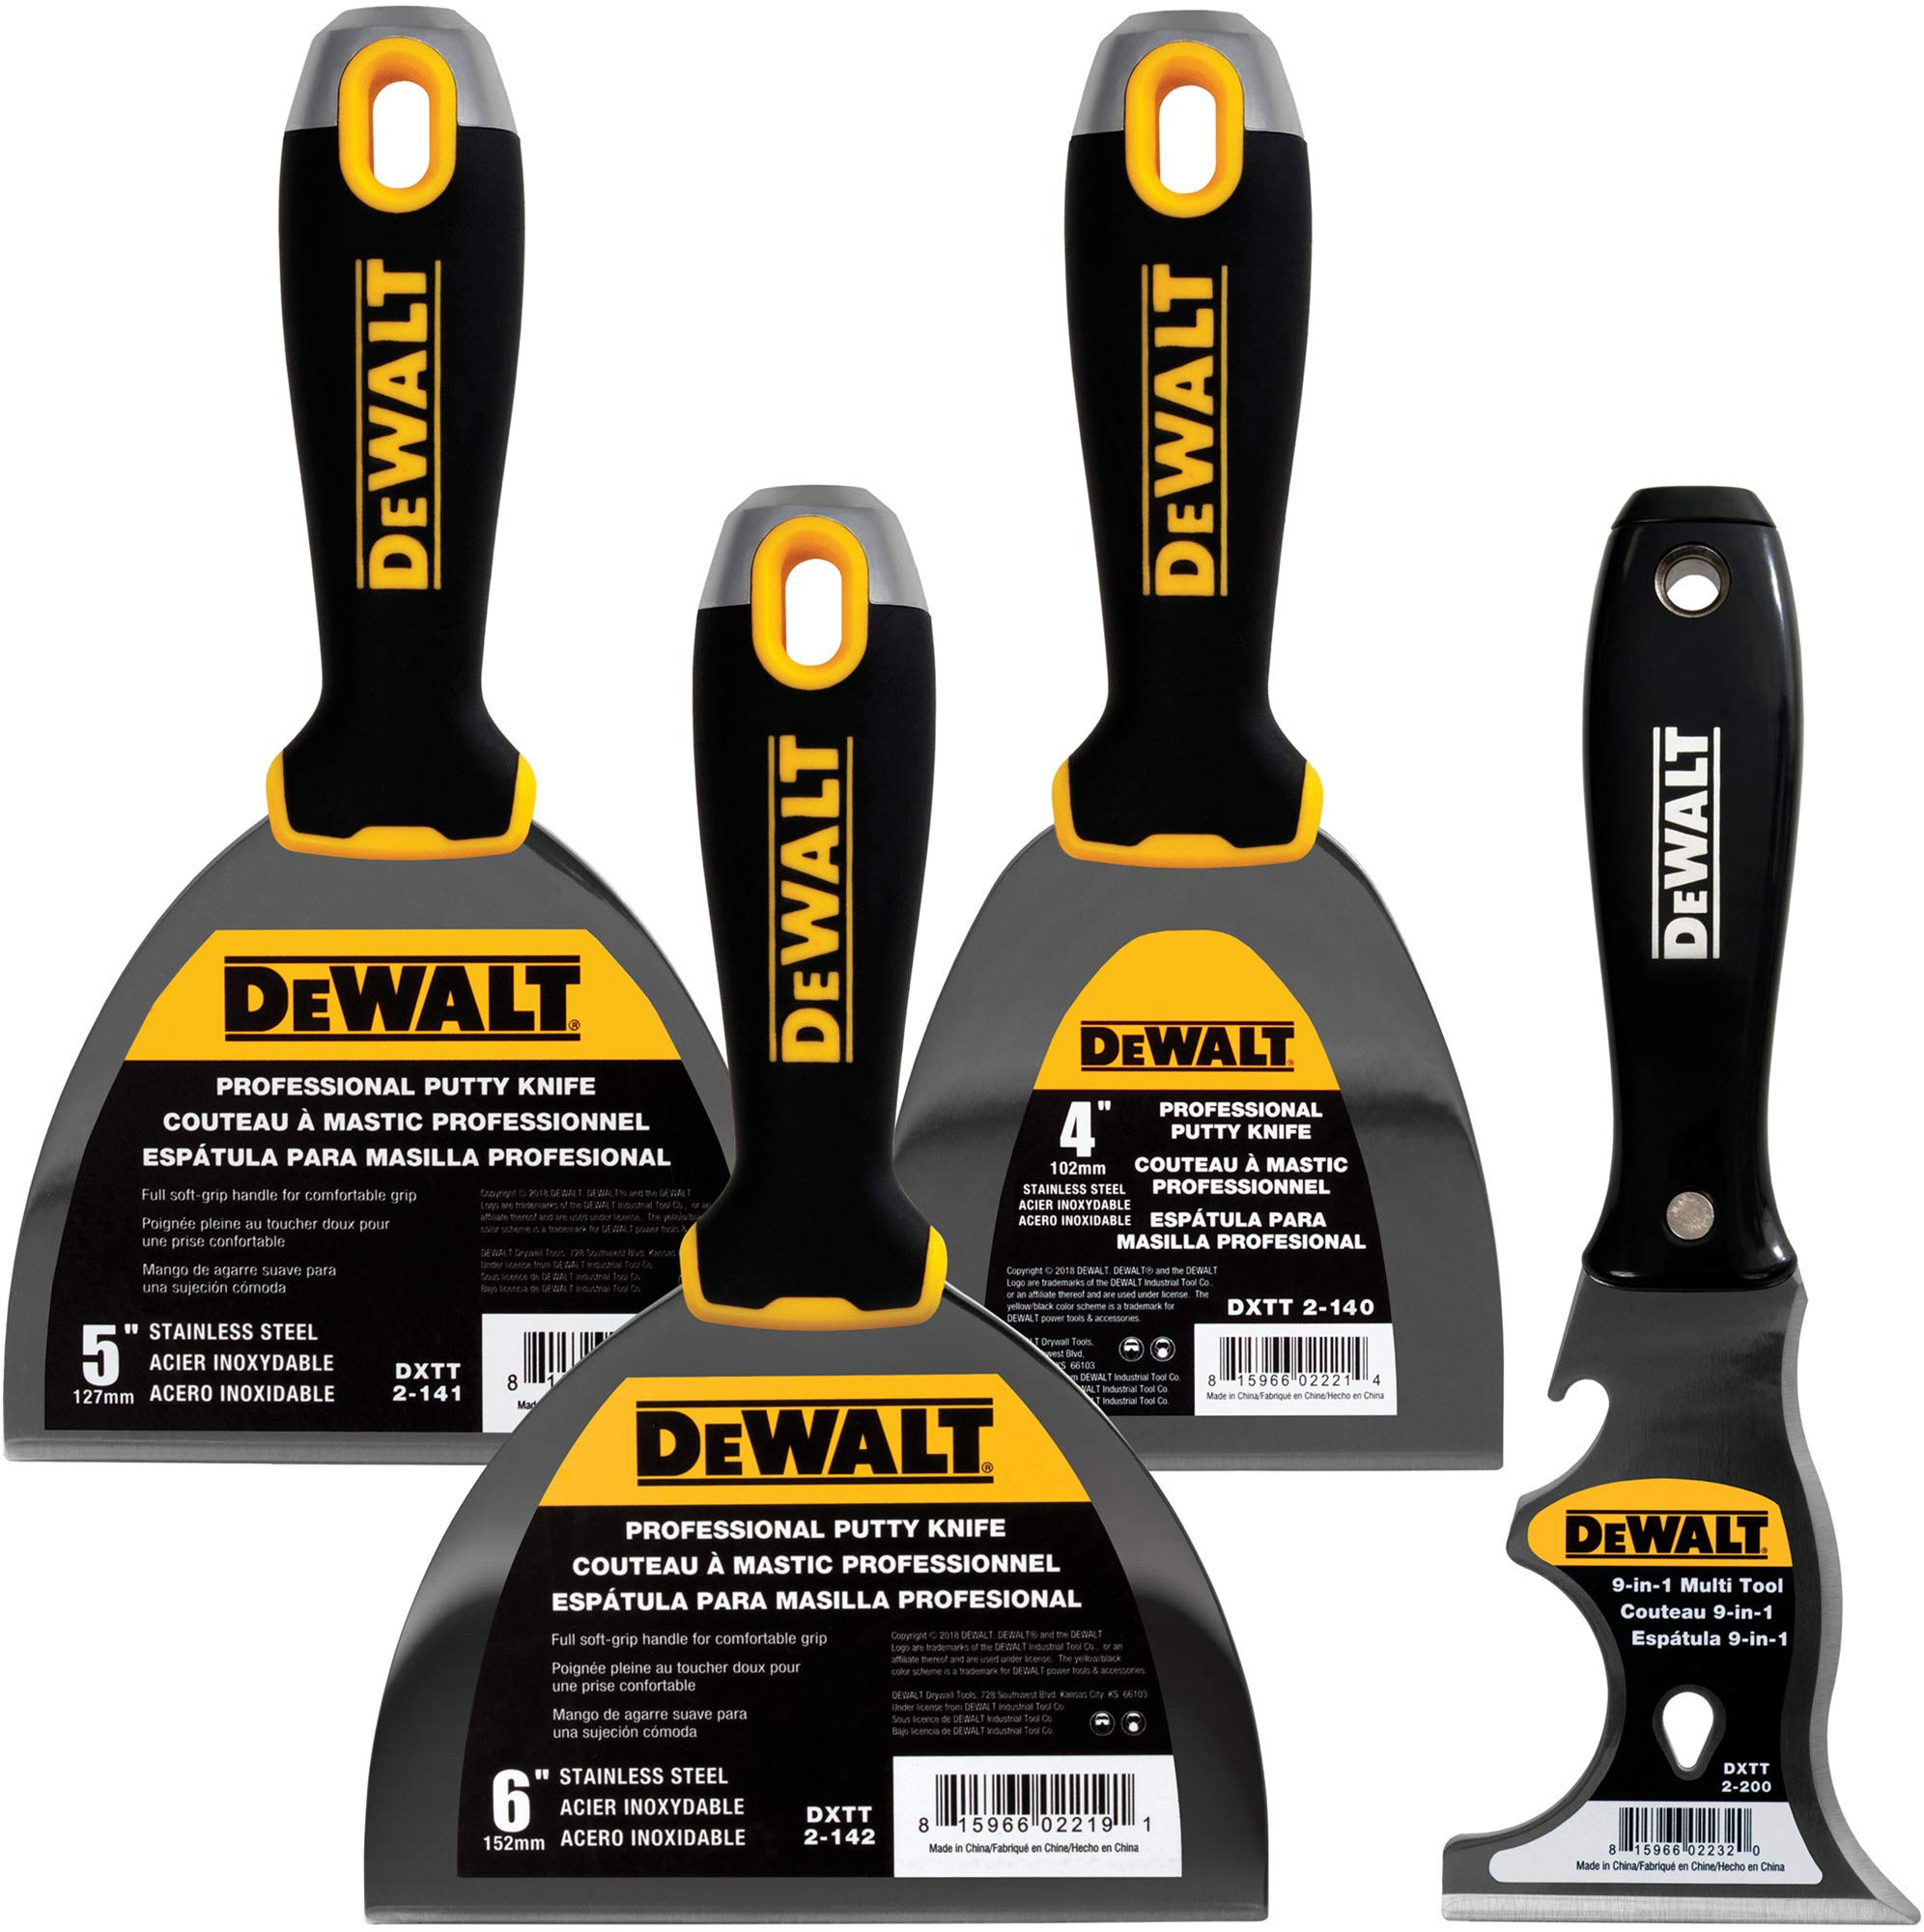 DEWALT Stainless Steel Putty Knife 3-Pack | 4/5/6-Inch + 9-in-1 Painter's Multitool Included for FREE | Soft Grip Handles | DXTT-3-140 by DEWALT